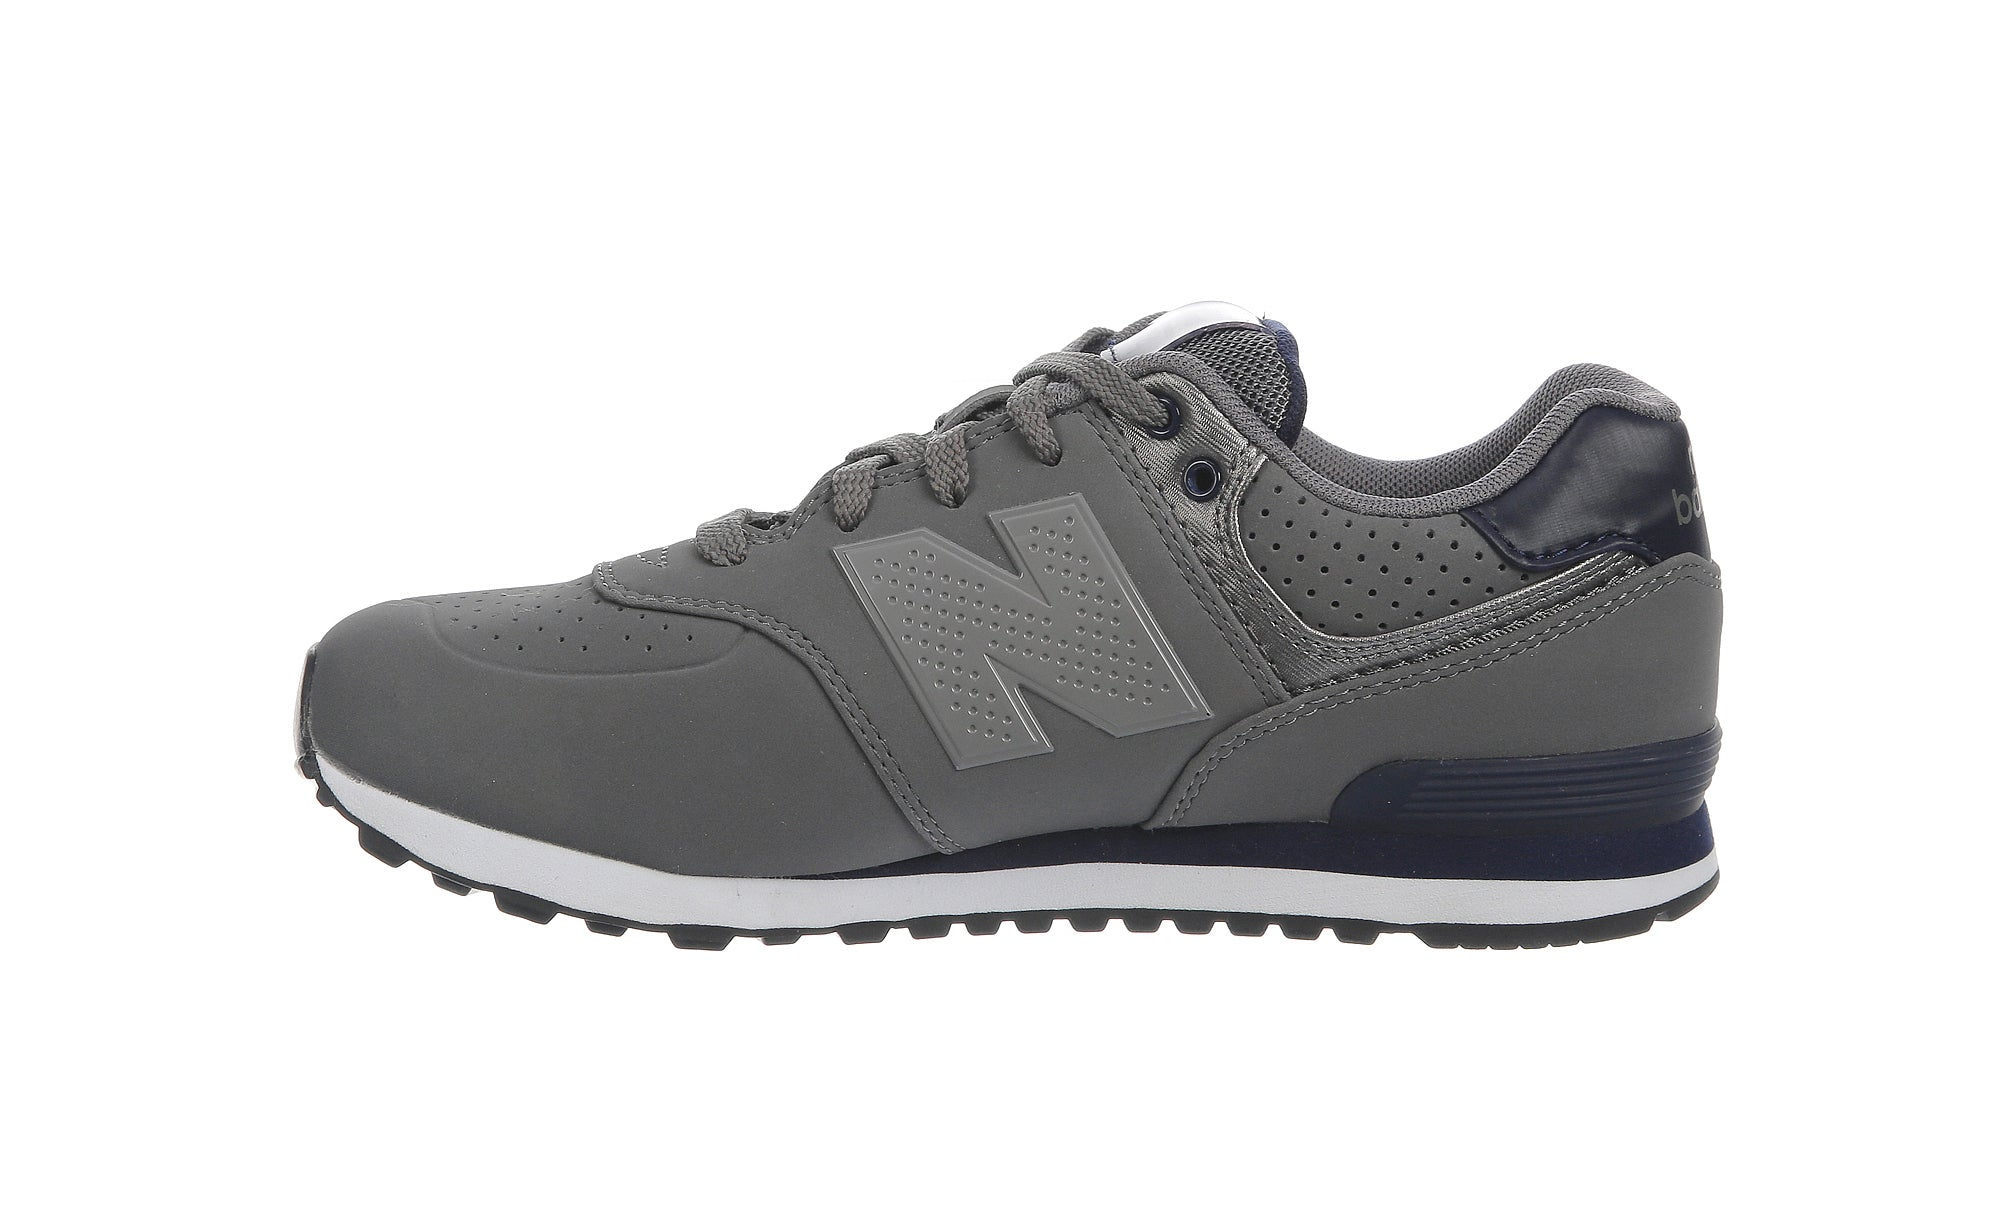 New Balance 574 Charcoal/Navy Big Kids Shoes